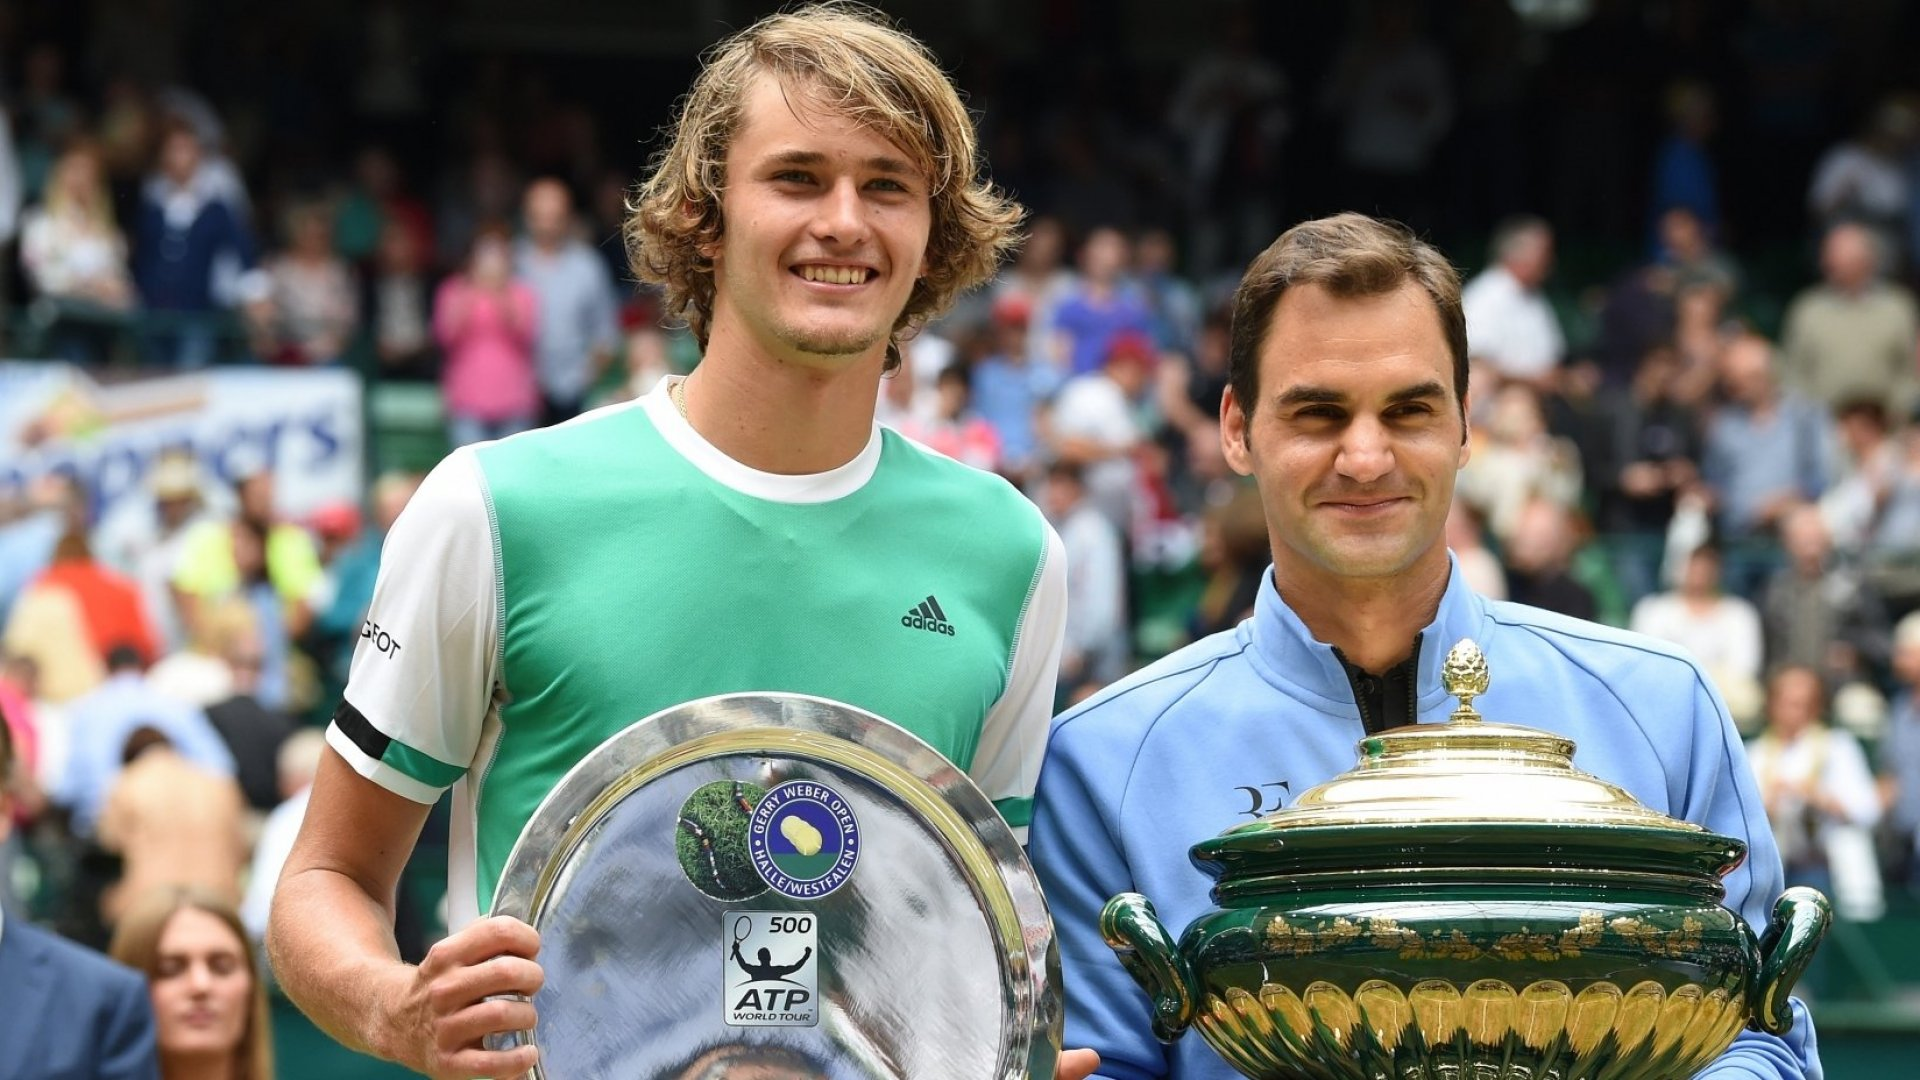 Roger Federer from Switzerland(right) poses with his trophy after winning his final match against Alexander Zverev from Germany at the Gerry Weber Open tennis tournament.